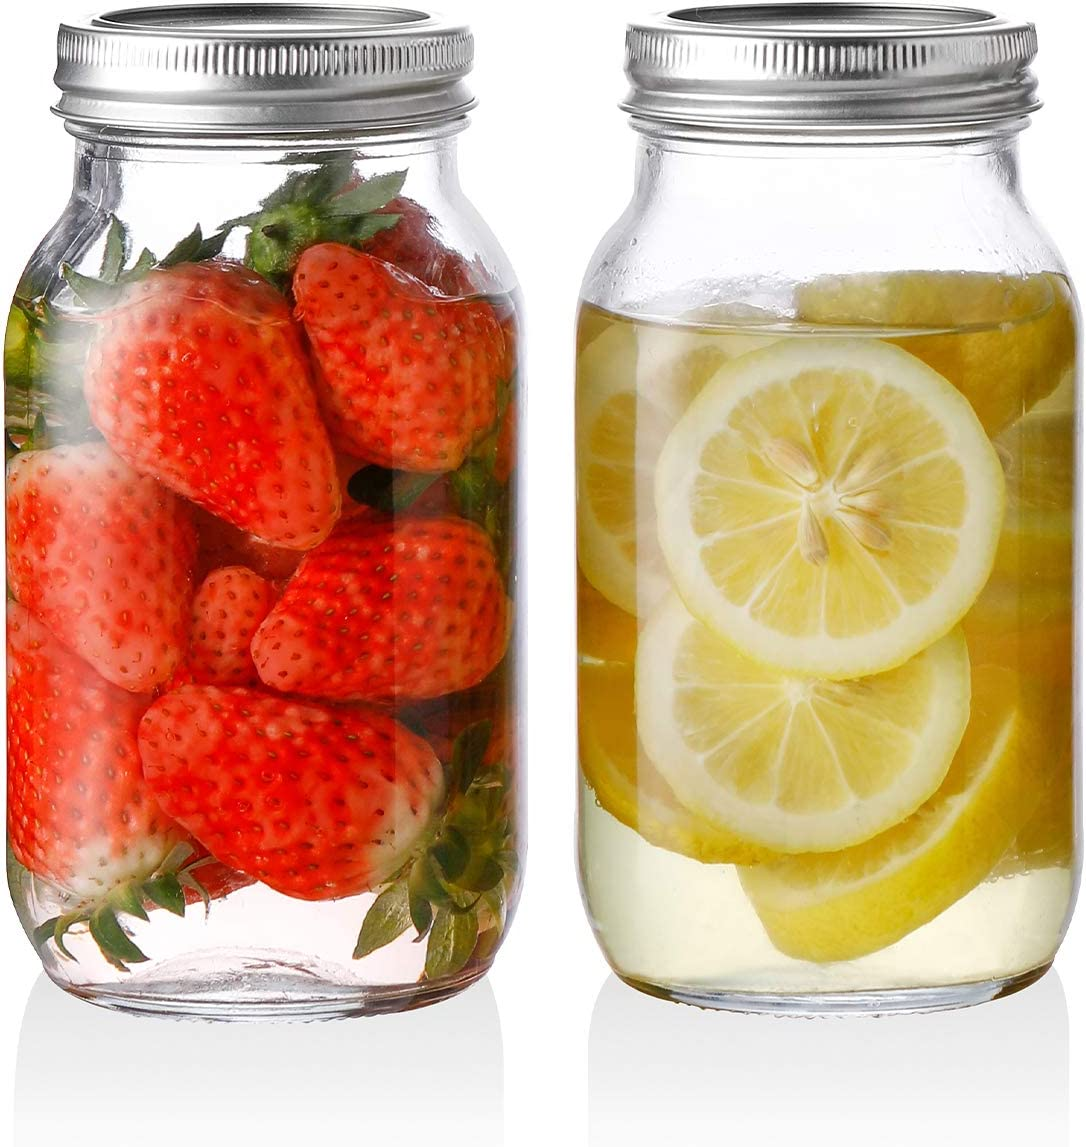 SWEEJAR Glass Mason Jars(24 oz),Ball Regular Mouth with Silver Metal Airtight Lid,Ideal for Meal Prep,Food Storage,Canning,Overnight Oats,Jelly,Dry Food,Salads,Yogurt,Jam,Honey(2 pack)